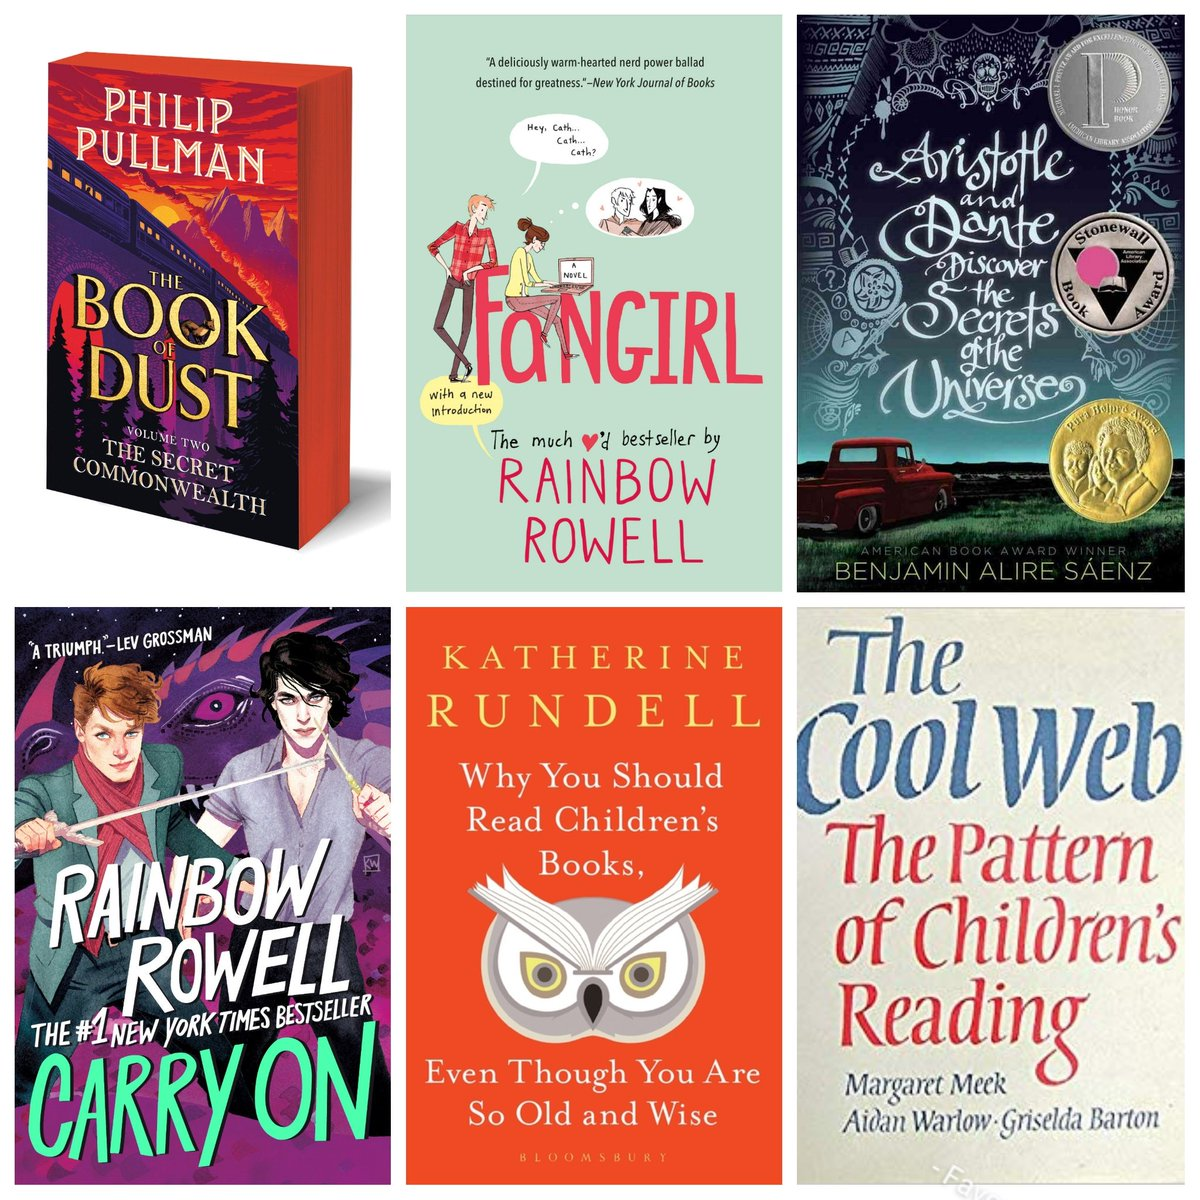 🌟After much deliberation, this is what Ive decided on for my November AND December reading! Have already read a lot of The Cool Web, but would like to return to it and cant wait for Carry On! What are your reading plans for the rest of the year?🌟